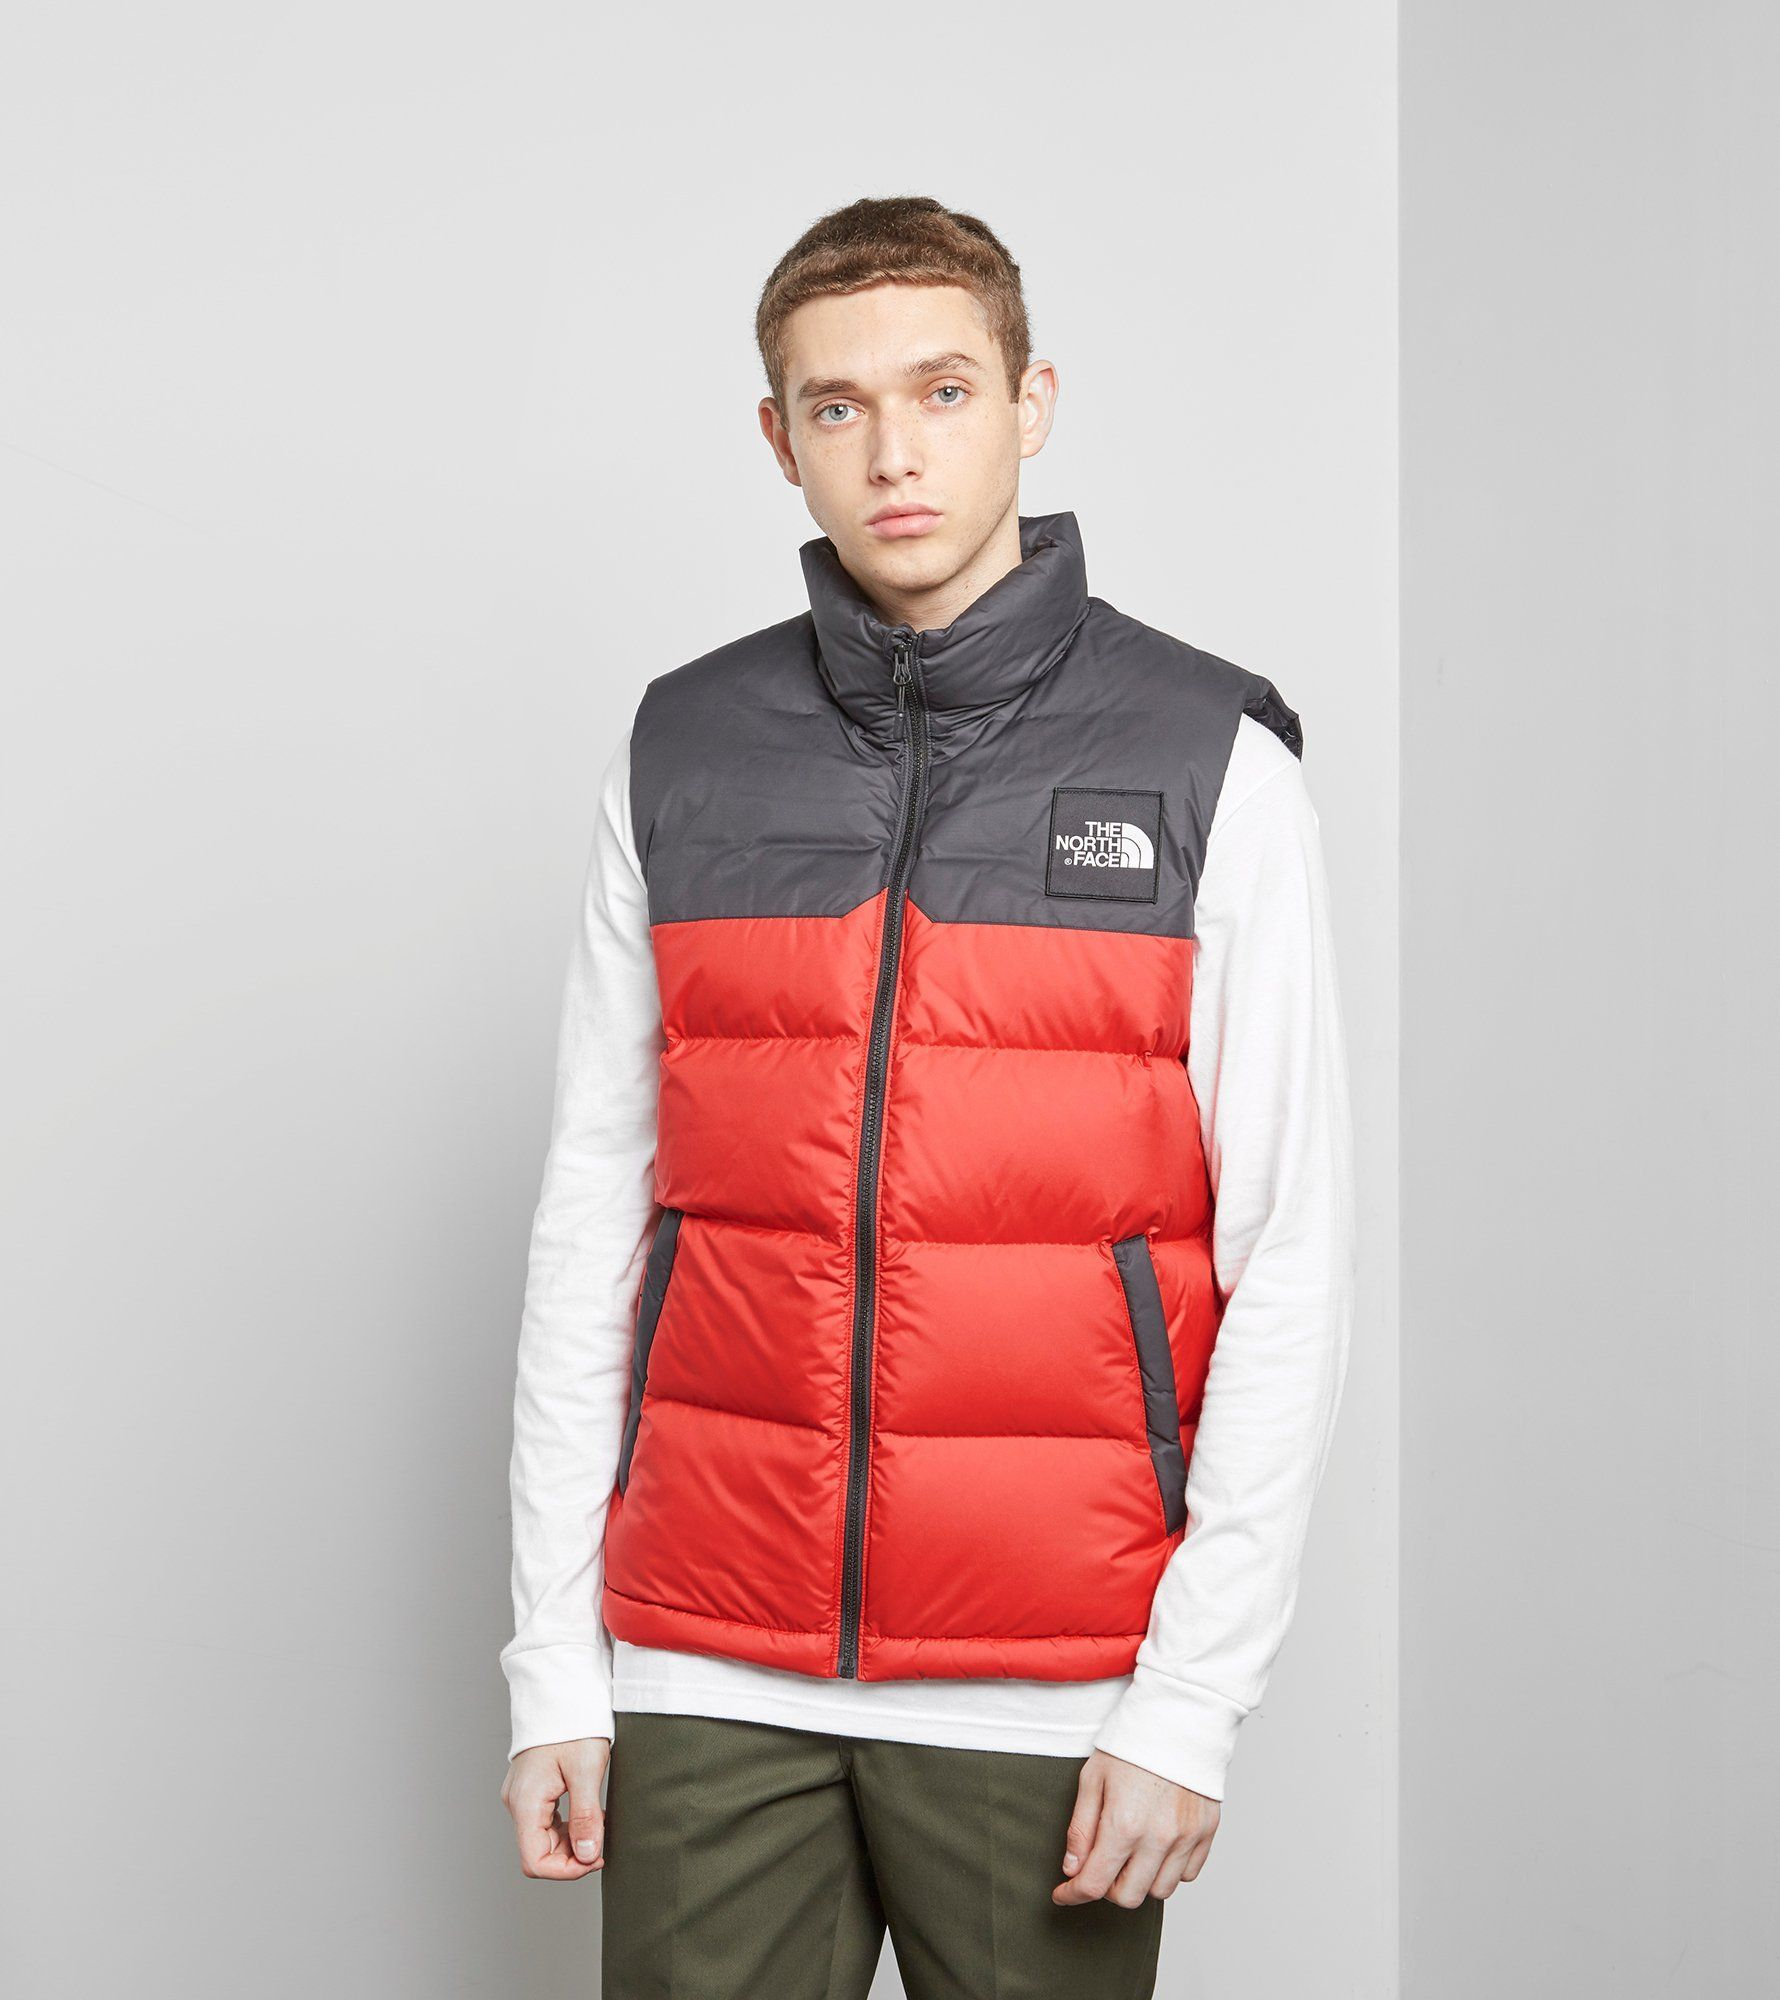 89434057a The North Face 1992 Nuptse Vest - find out more on our site. Find ...